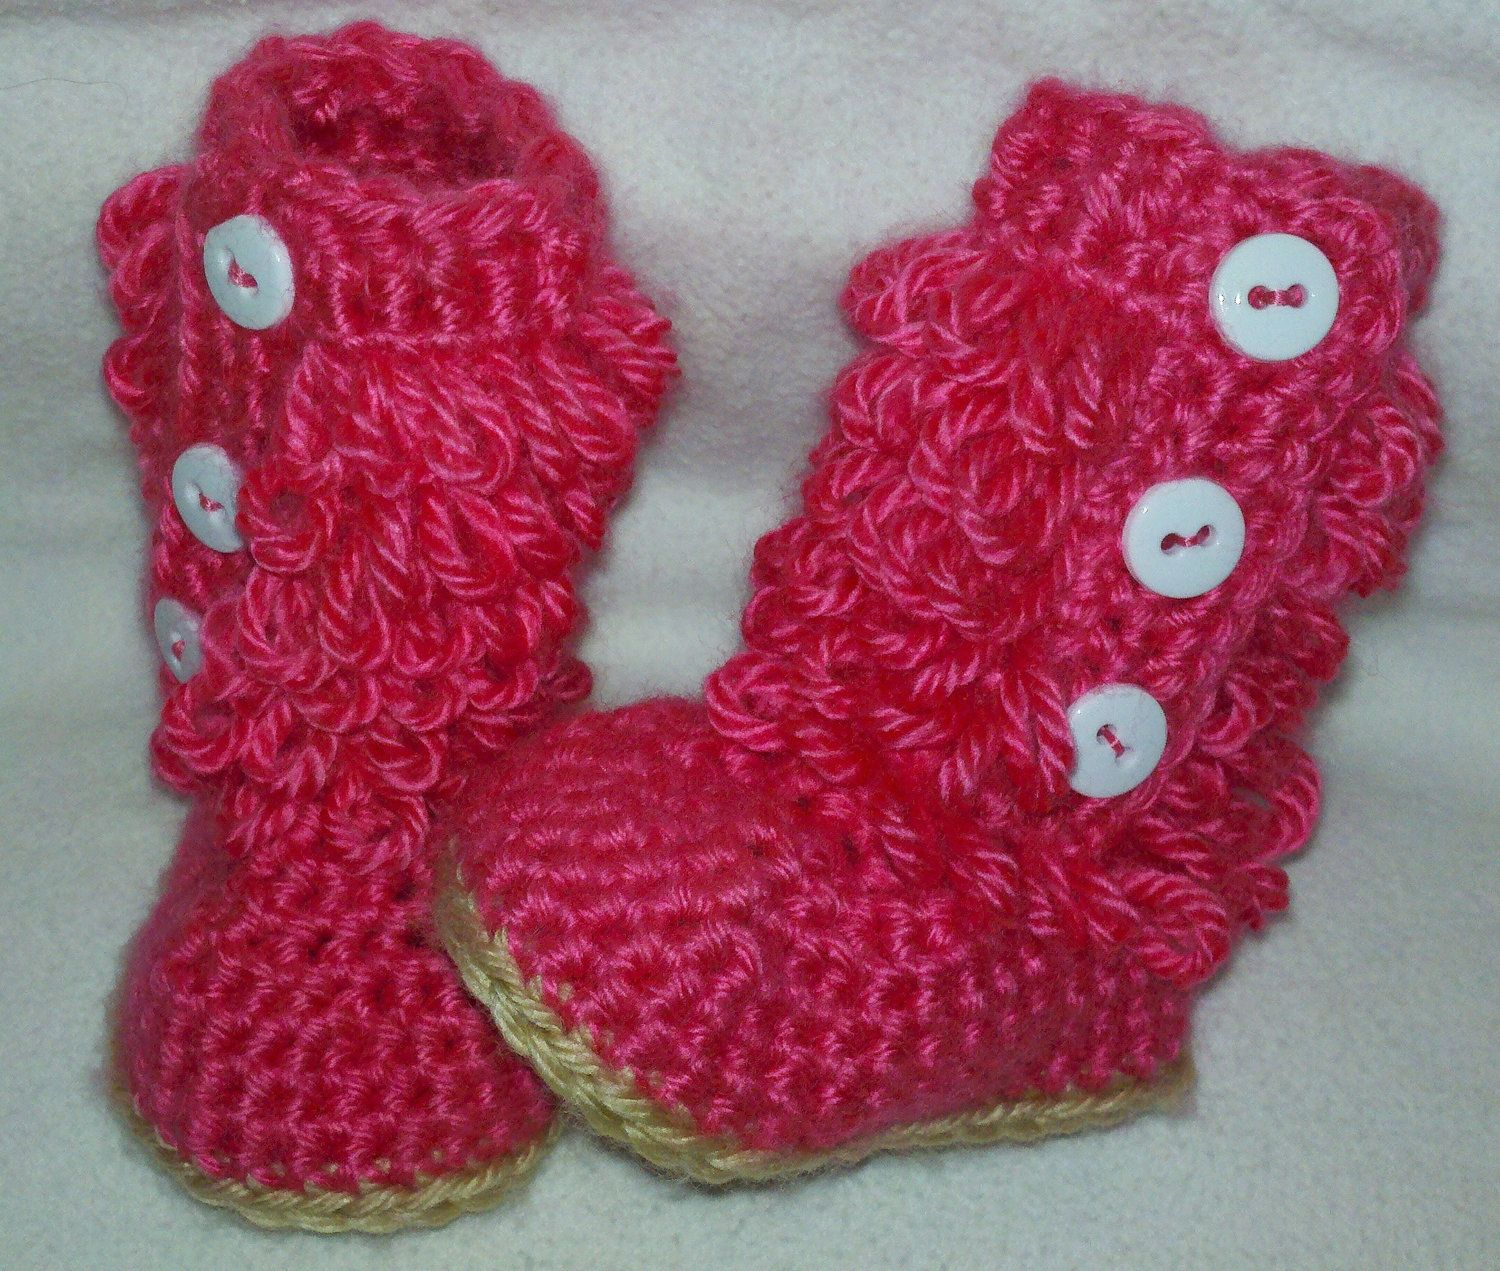 Crochetpatterncentral Crochet Pattern Central Free Shoe And